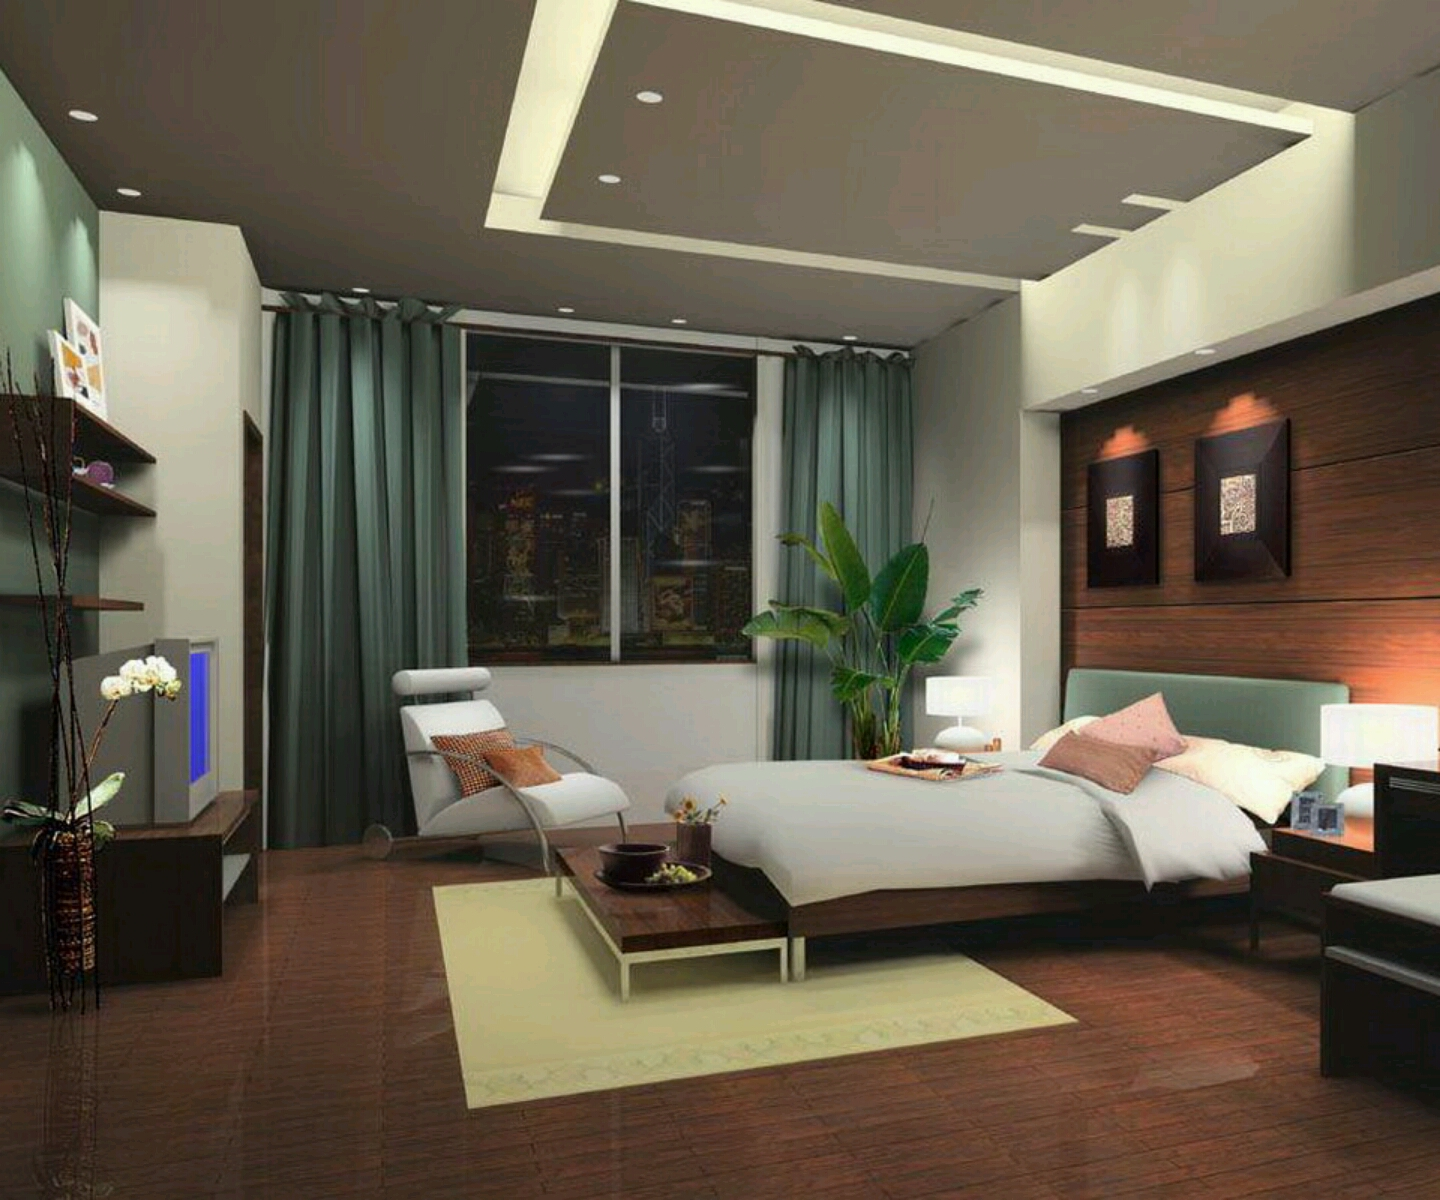 New home designs latest modern bedrooms designs best ideas for New style bedroom bed design